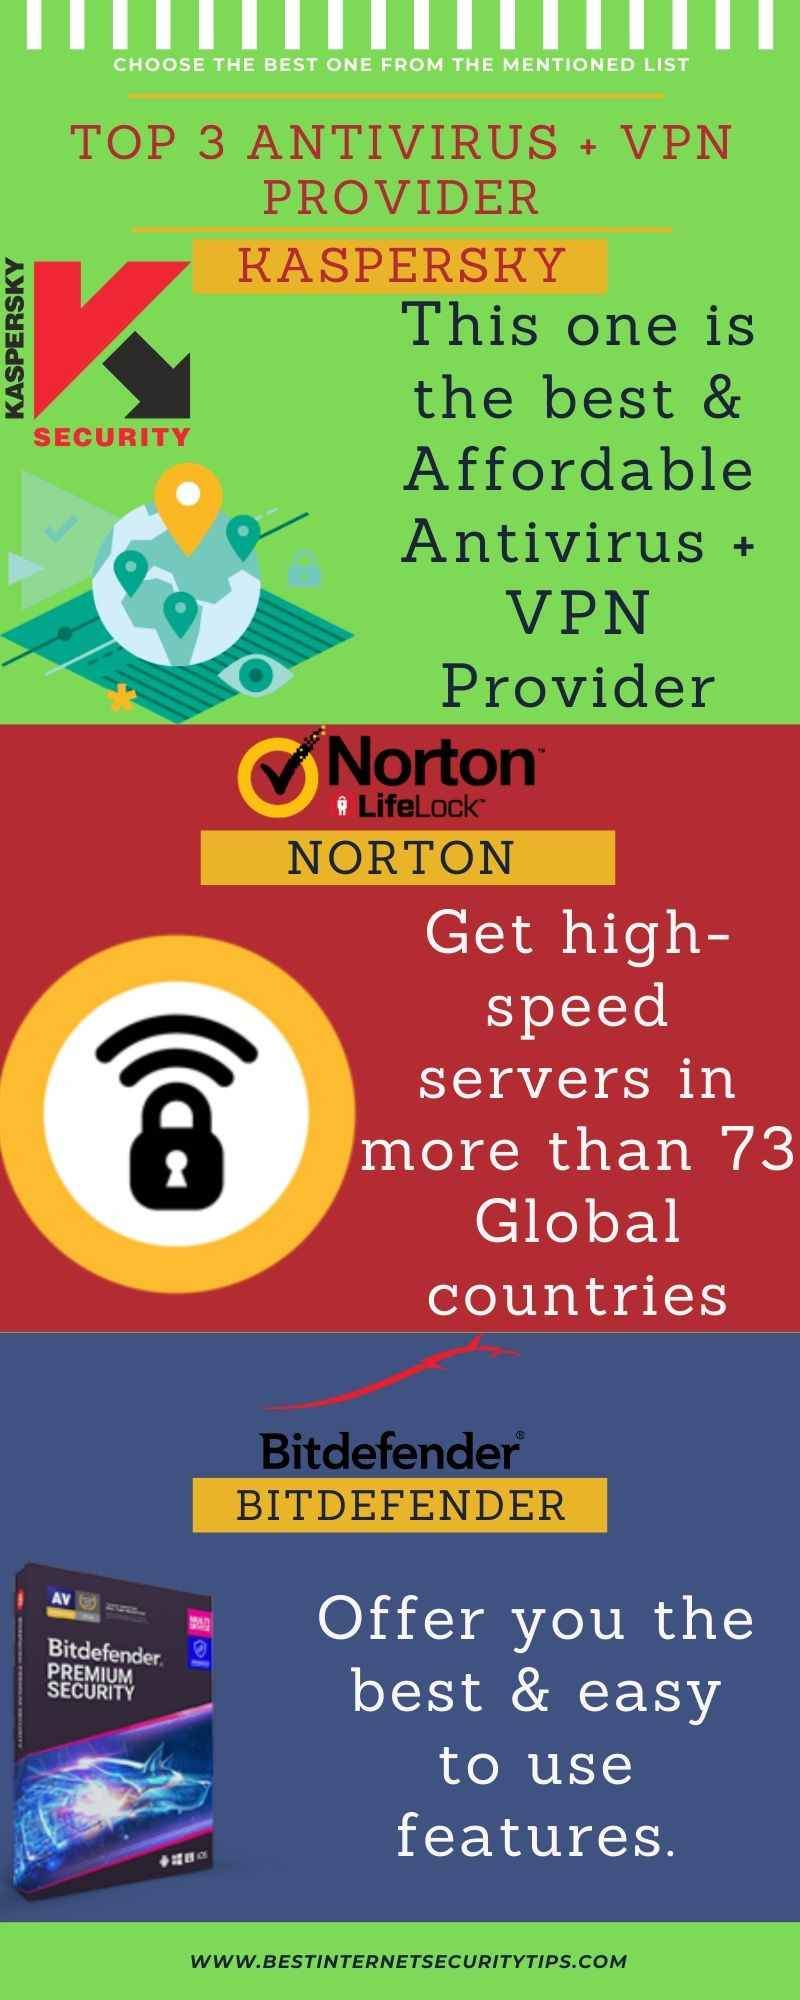 Best Antivirus Security Provider With VPN